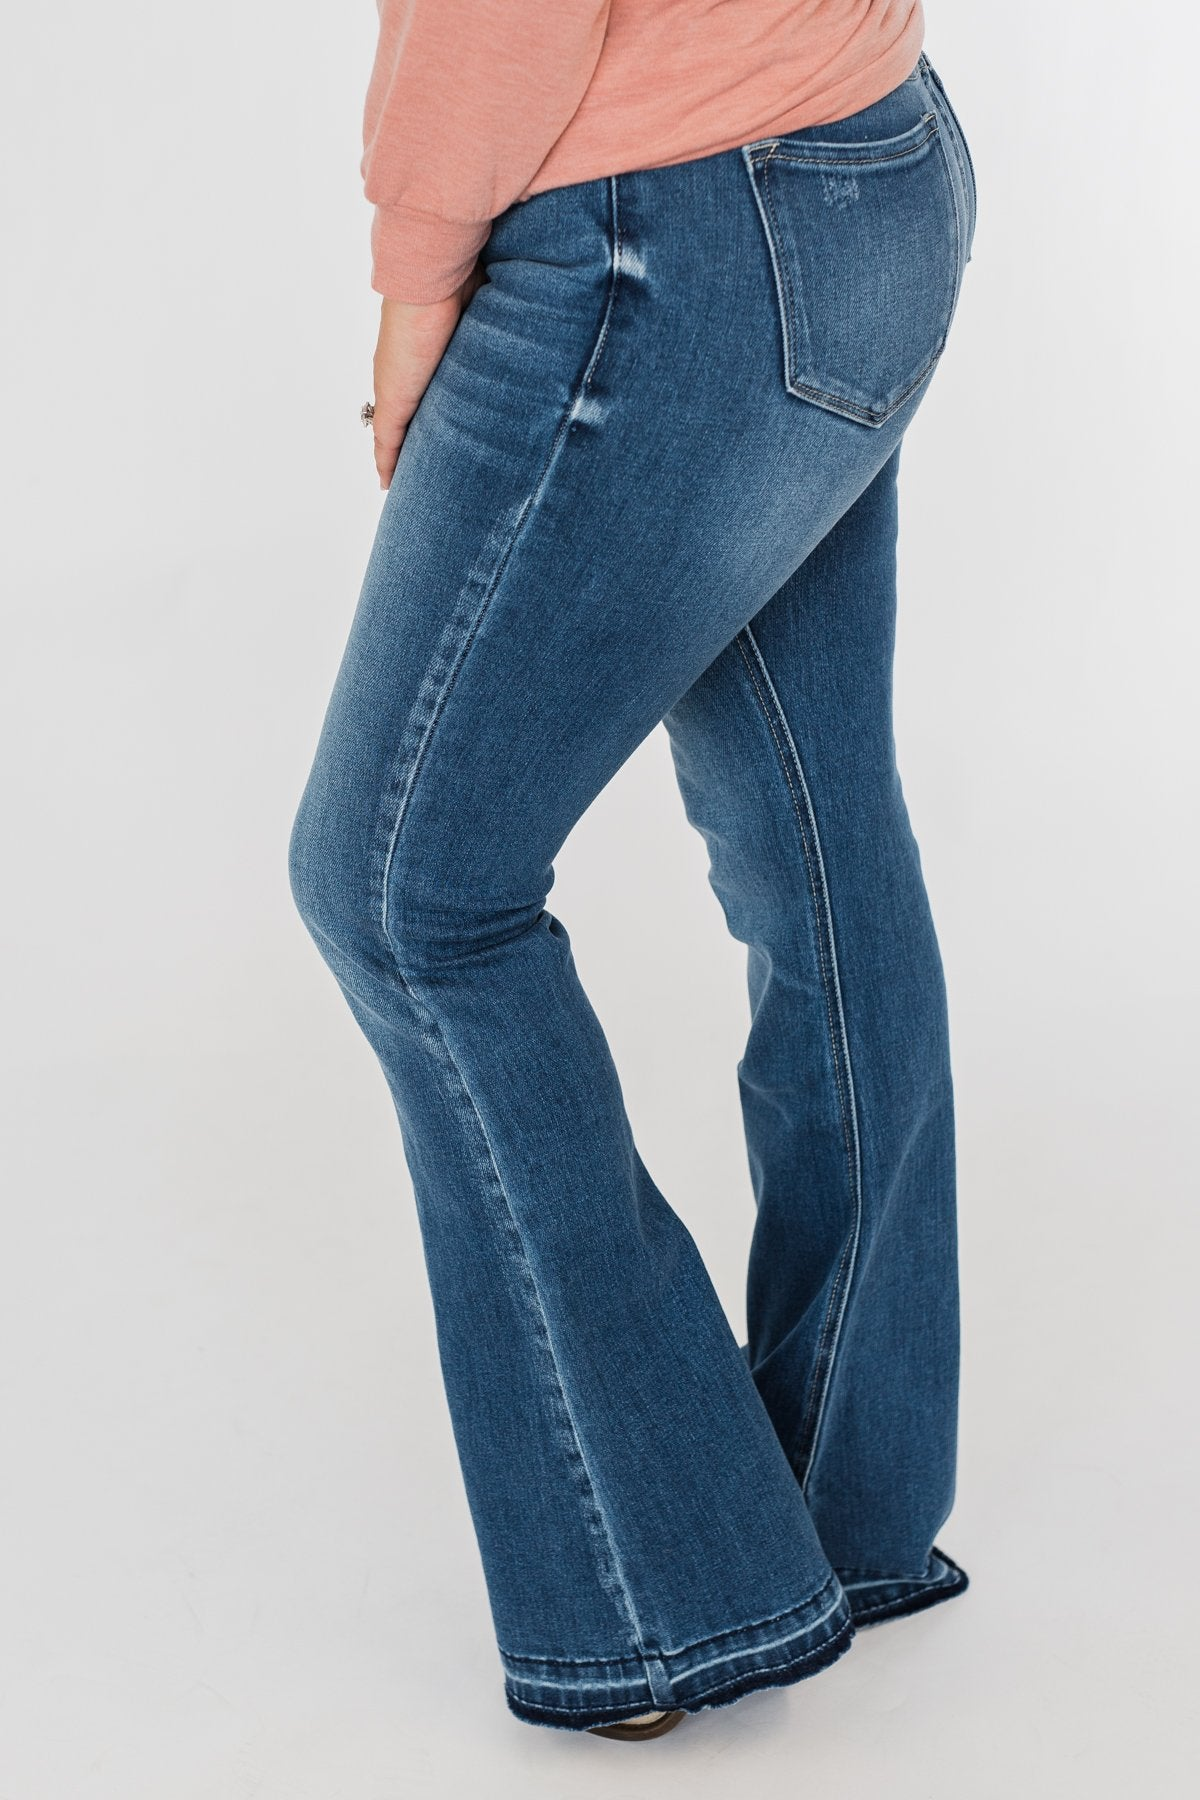 KanCan Button Fly Flare Jeans- Medium Mandy Wash